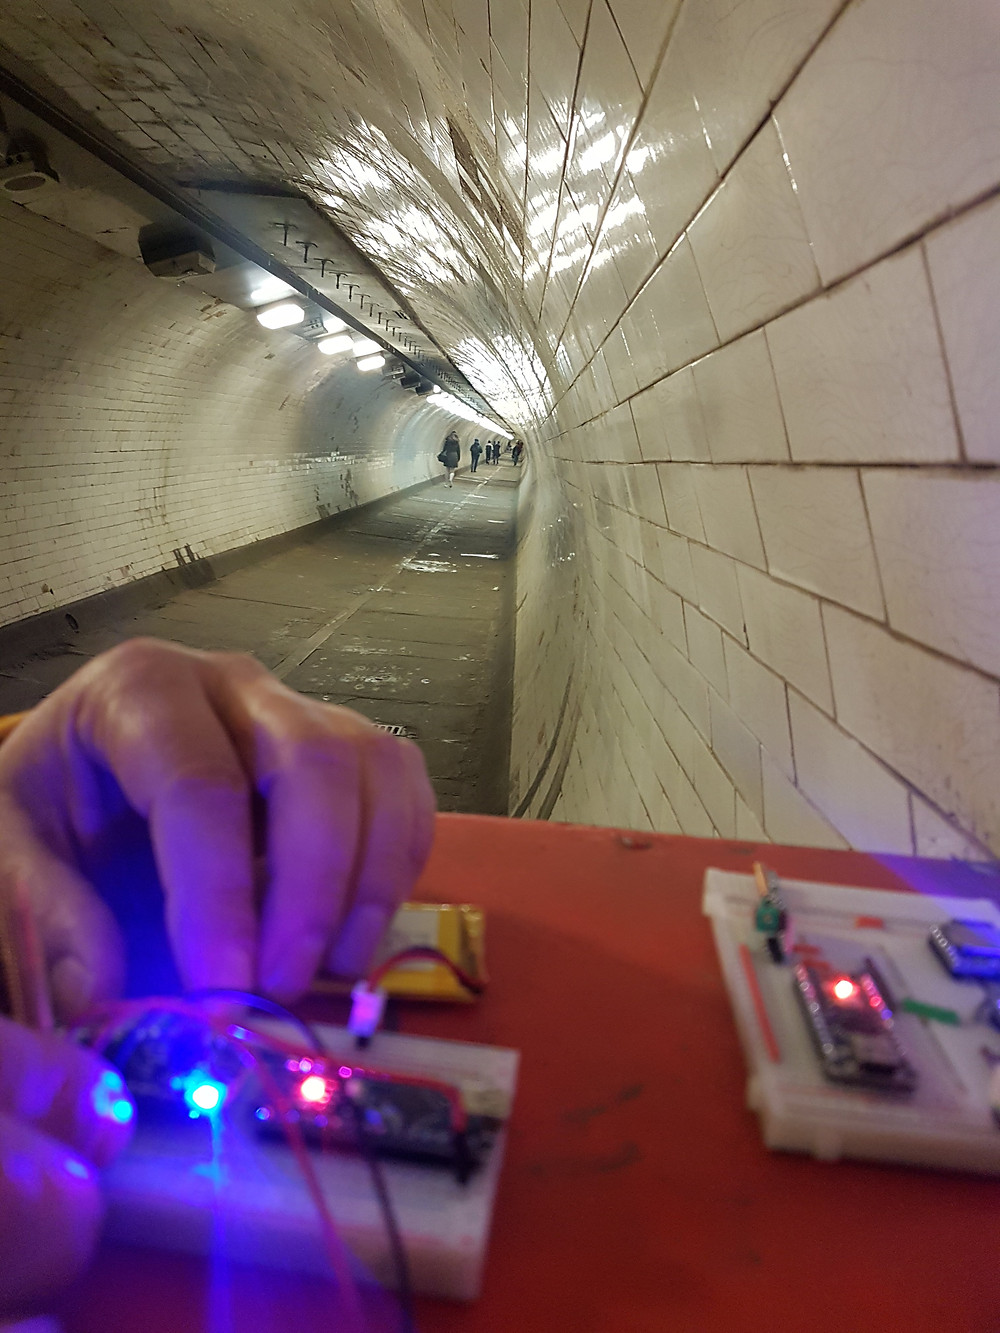 Electronics being tested in Greenwich Foot Tunnel for a sound art installation